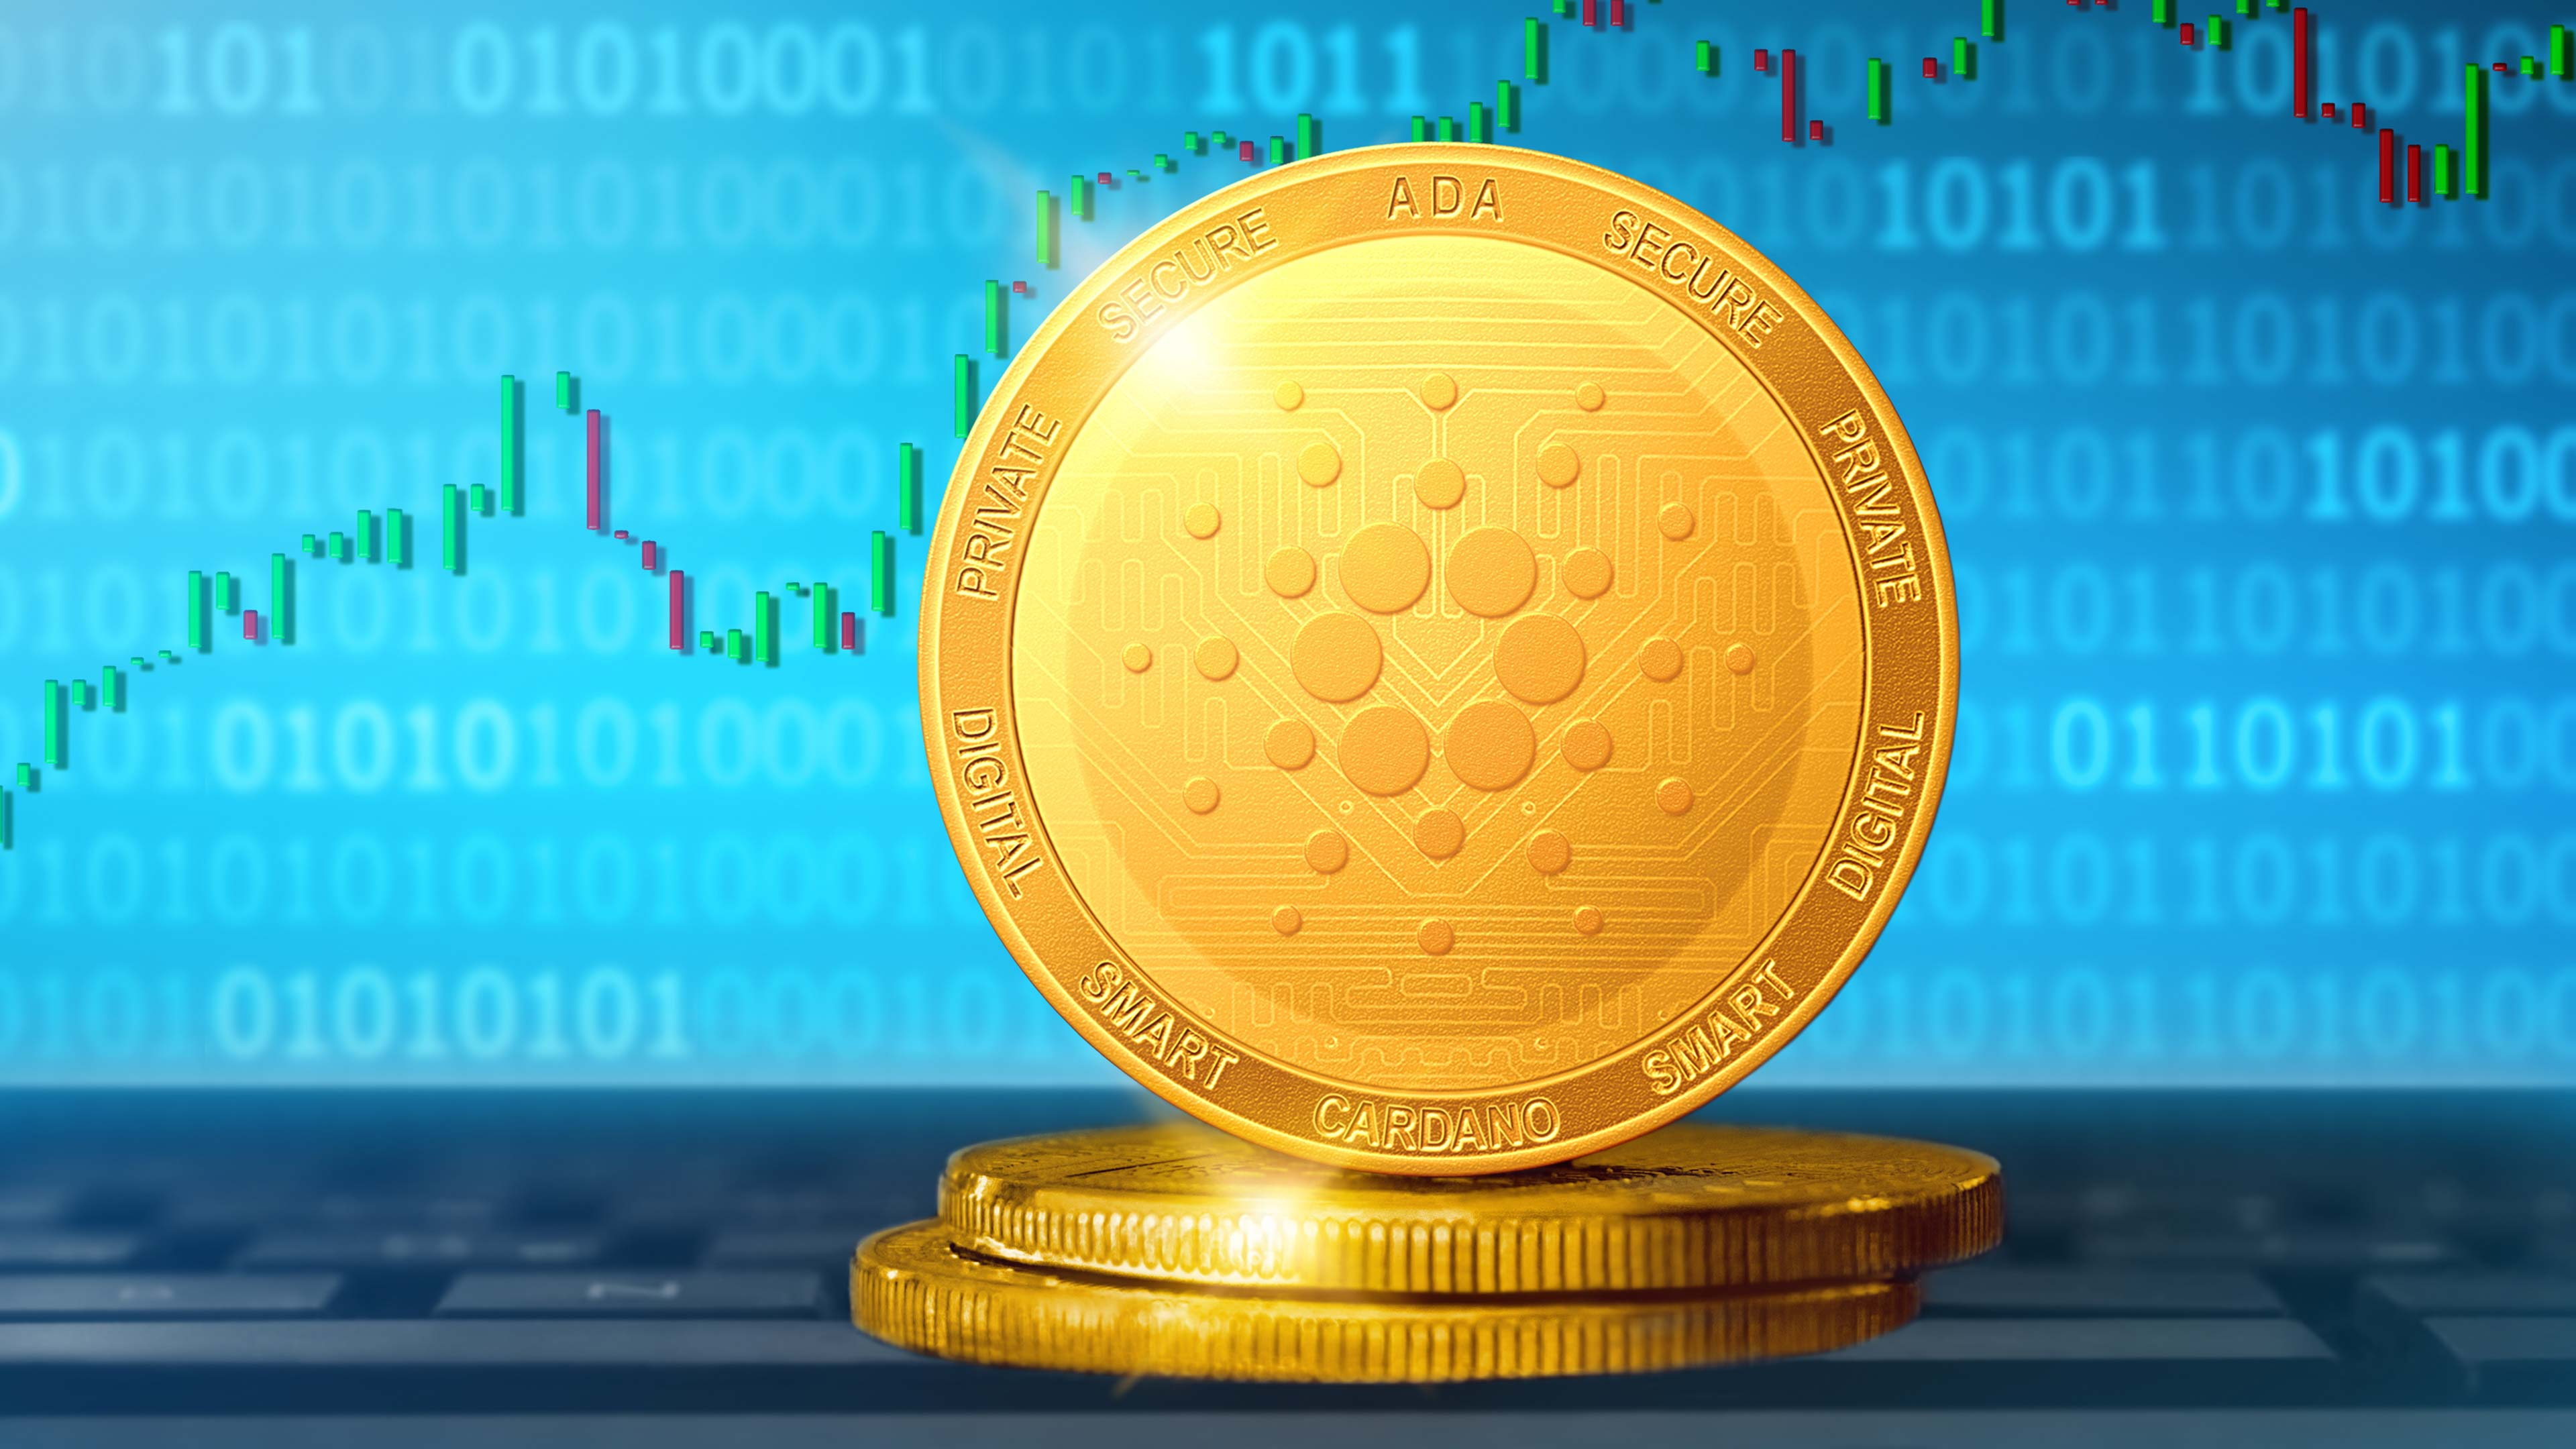 Top cryptocurrency listed — Cardano